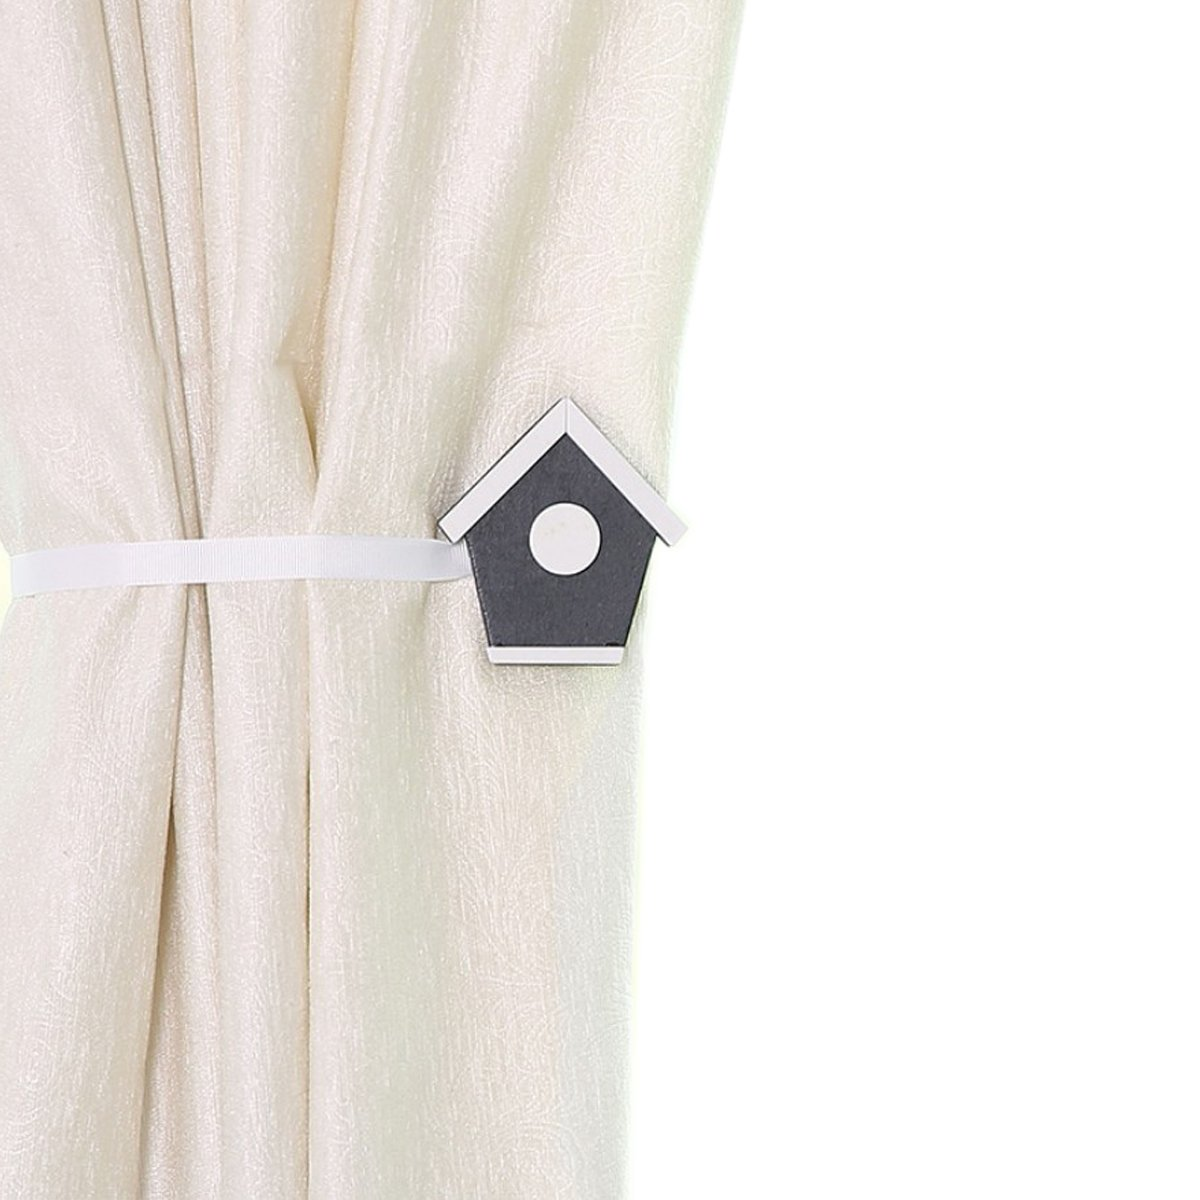 YING CHIC YYC 2 Pcs Lovely House Magnetic Curtain Buckle Tieback Kid's Room Drapey Holder Ribbon Rope (White)